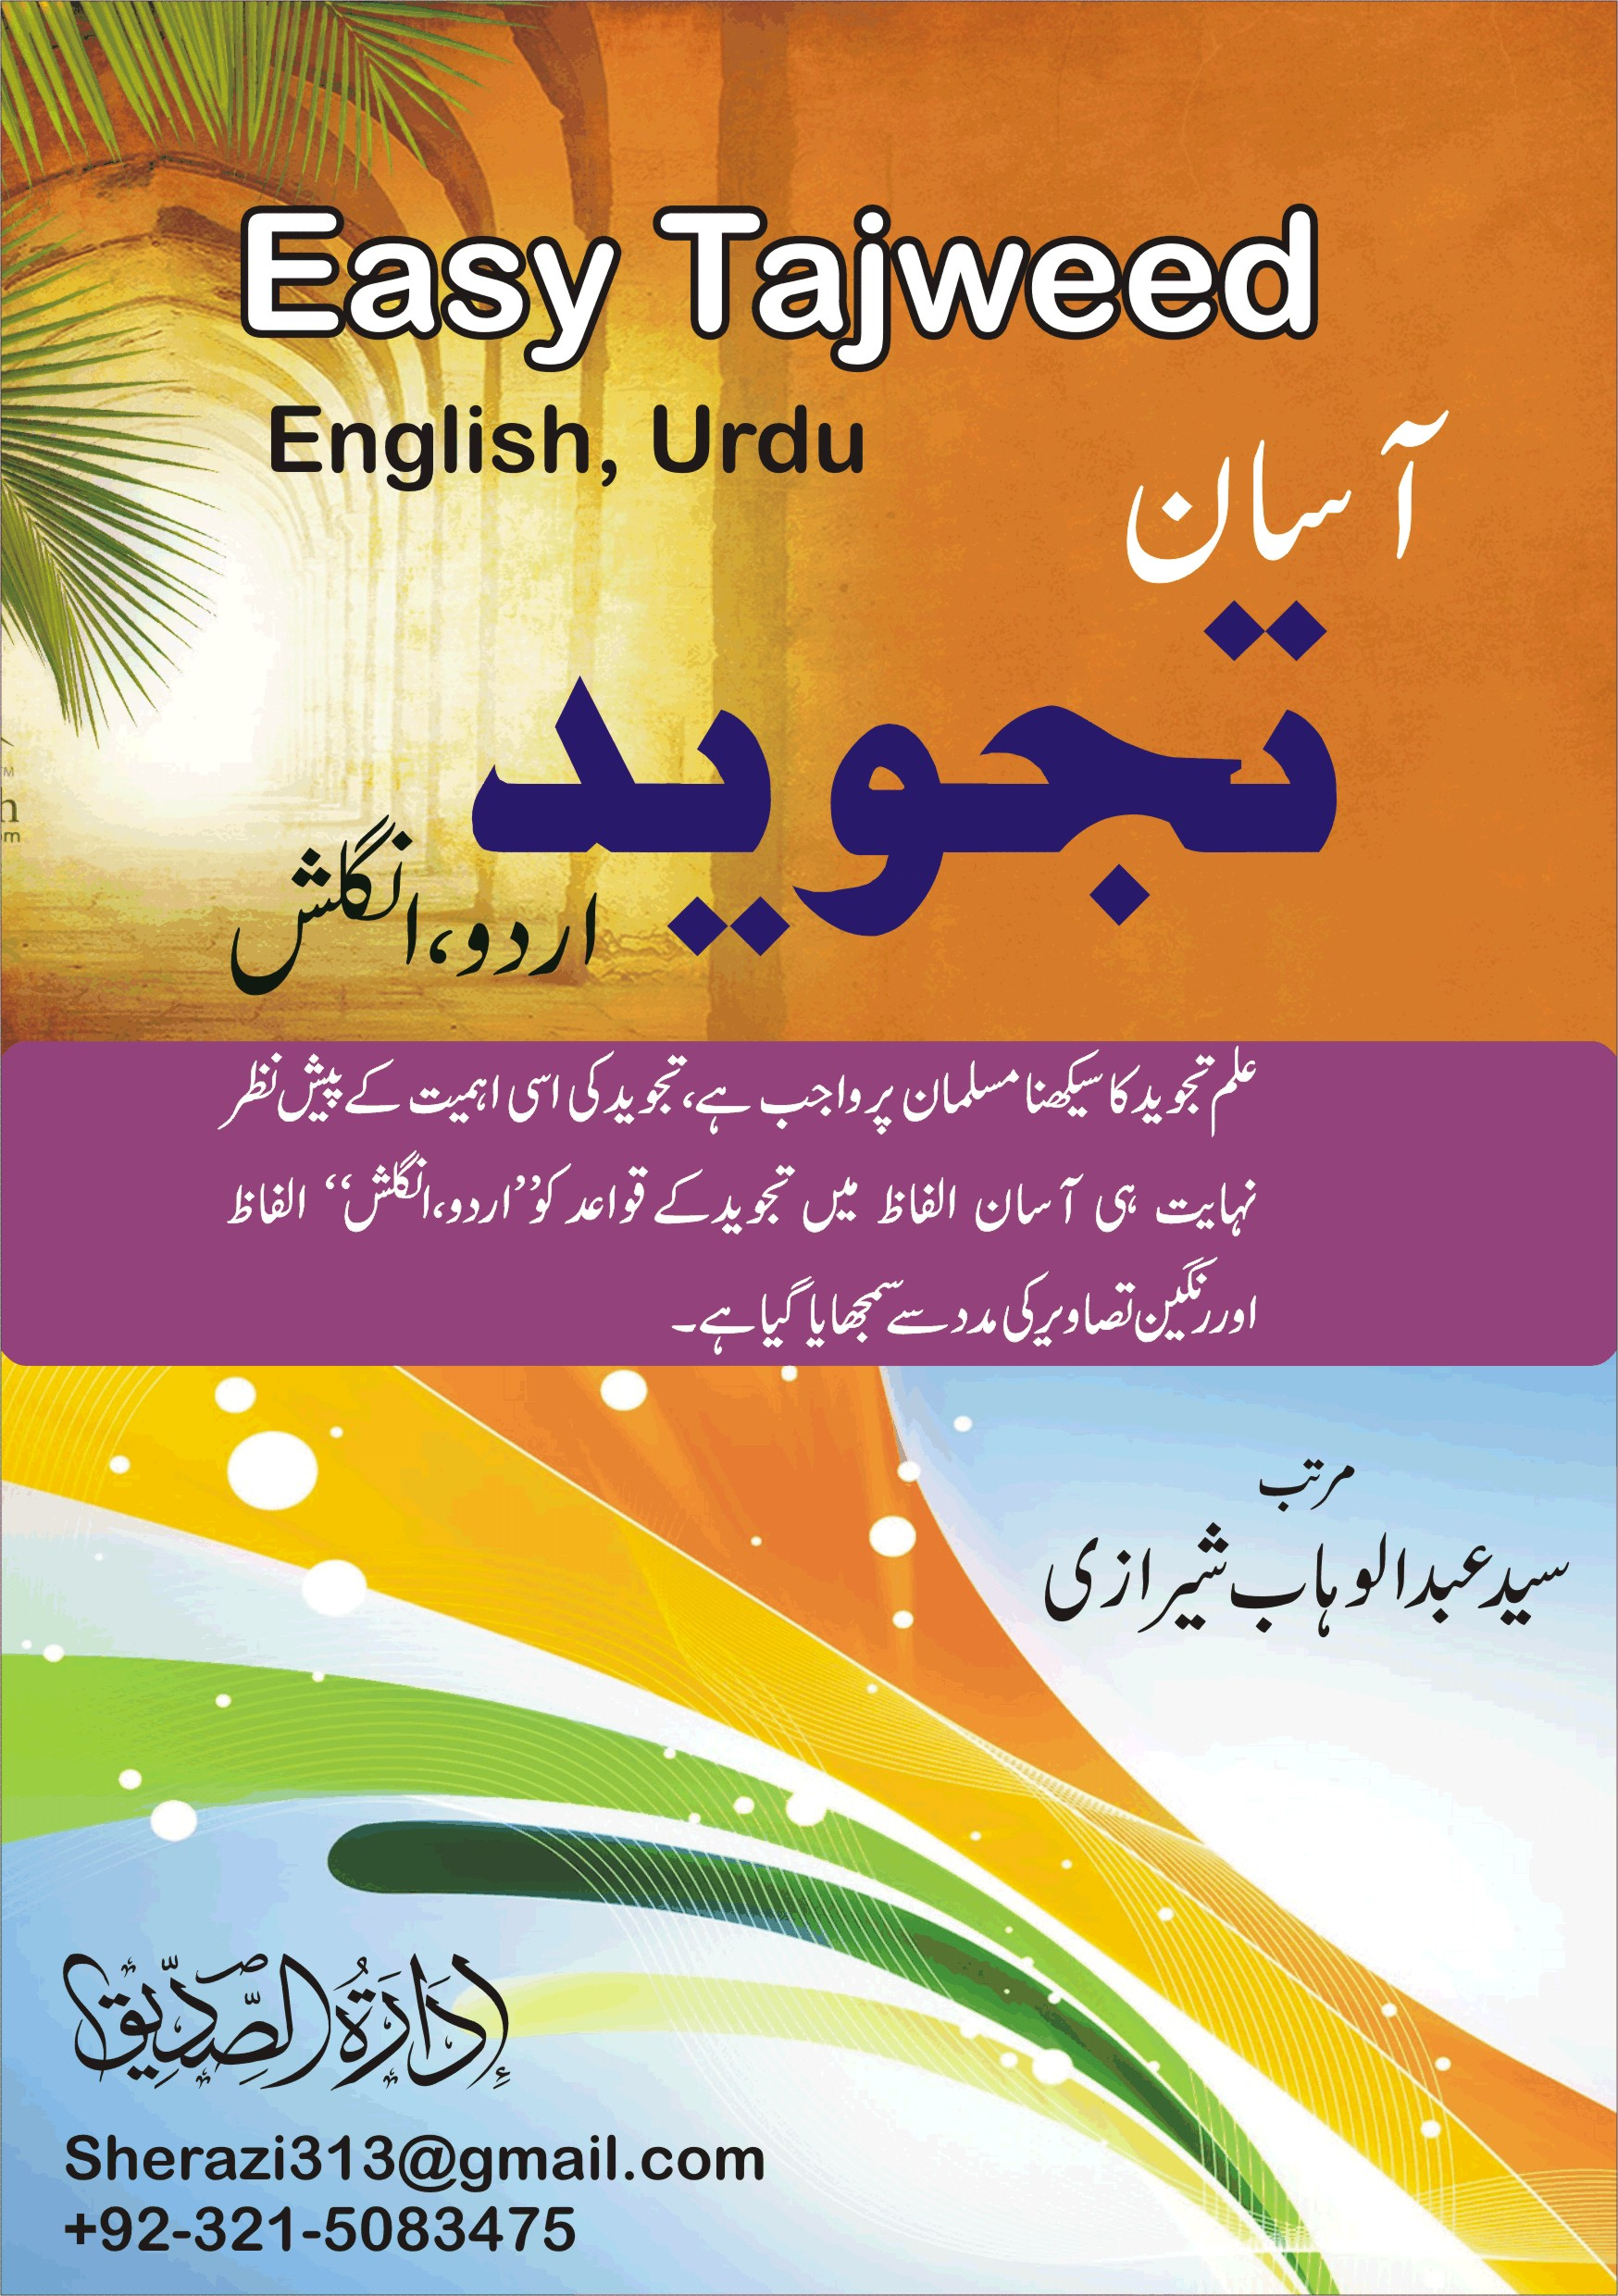 Abu Hanifa Rahmatullah Asan Tajweed Urdu English Book